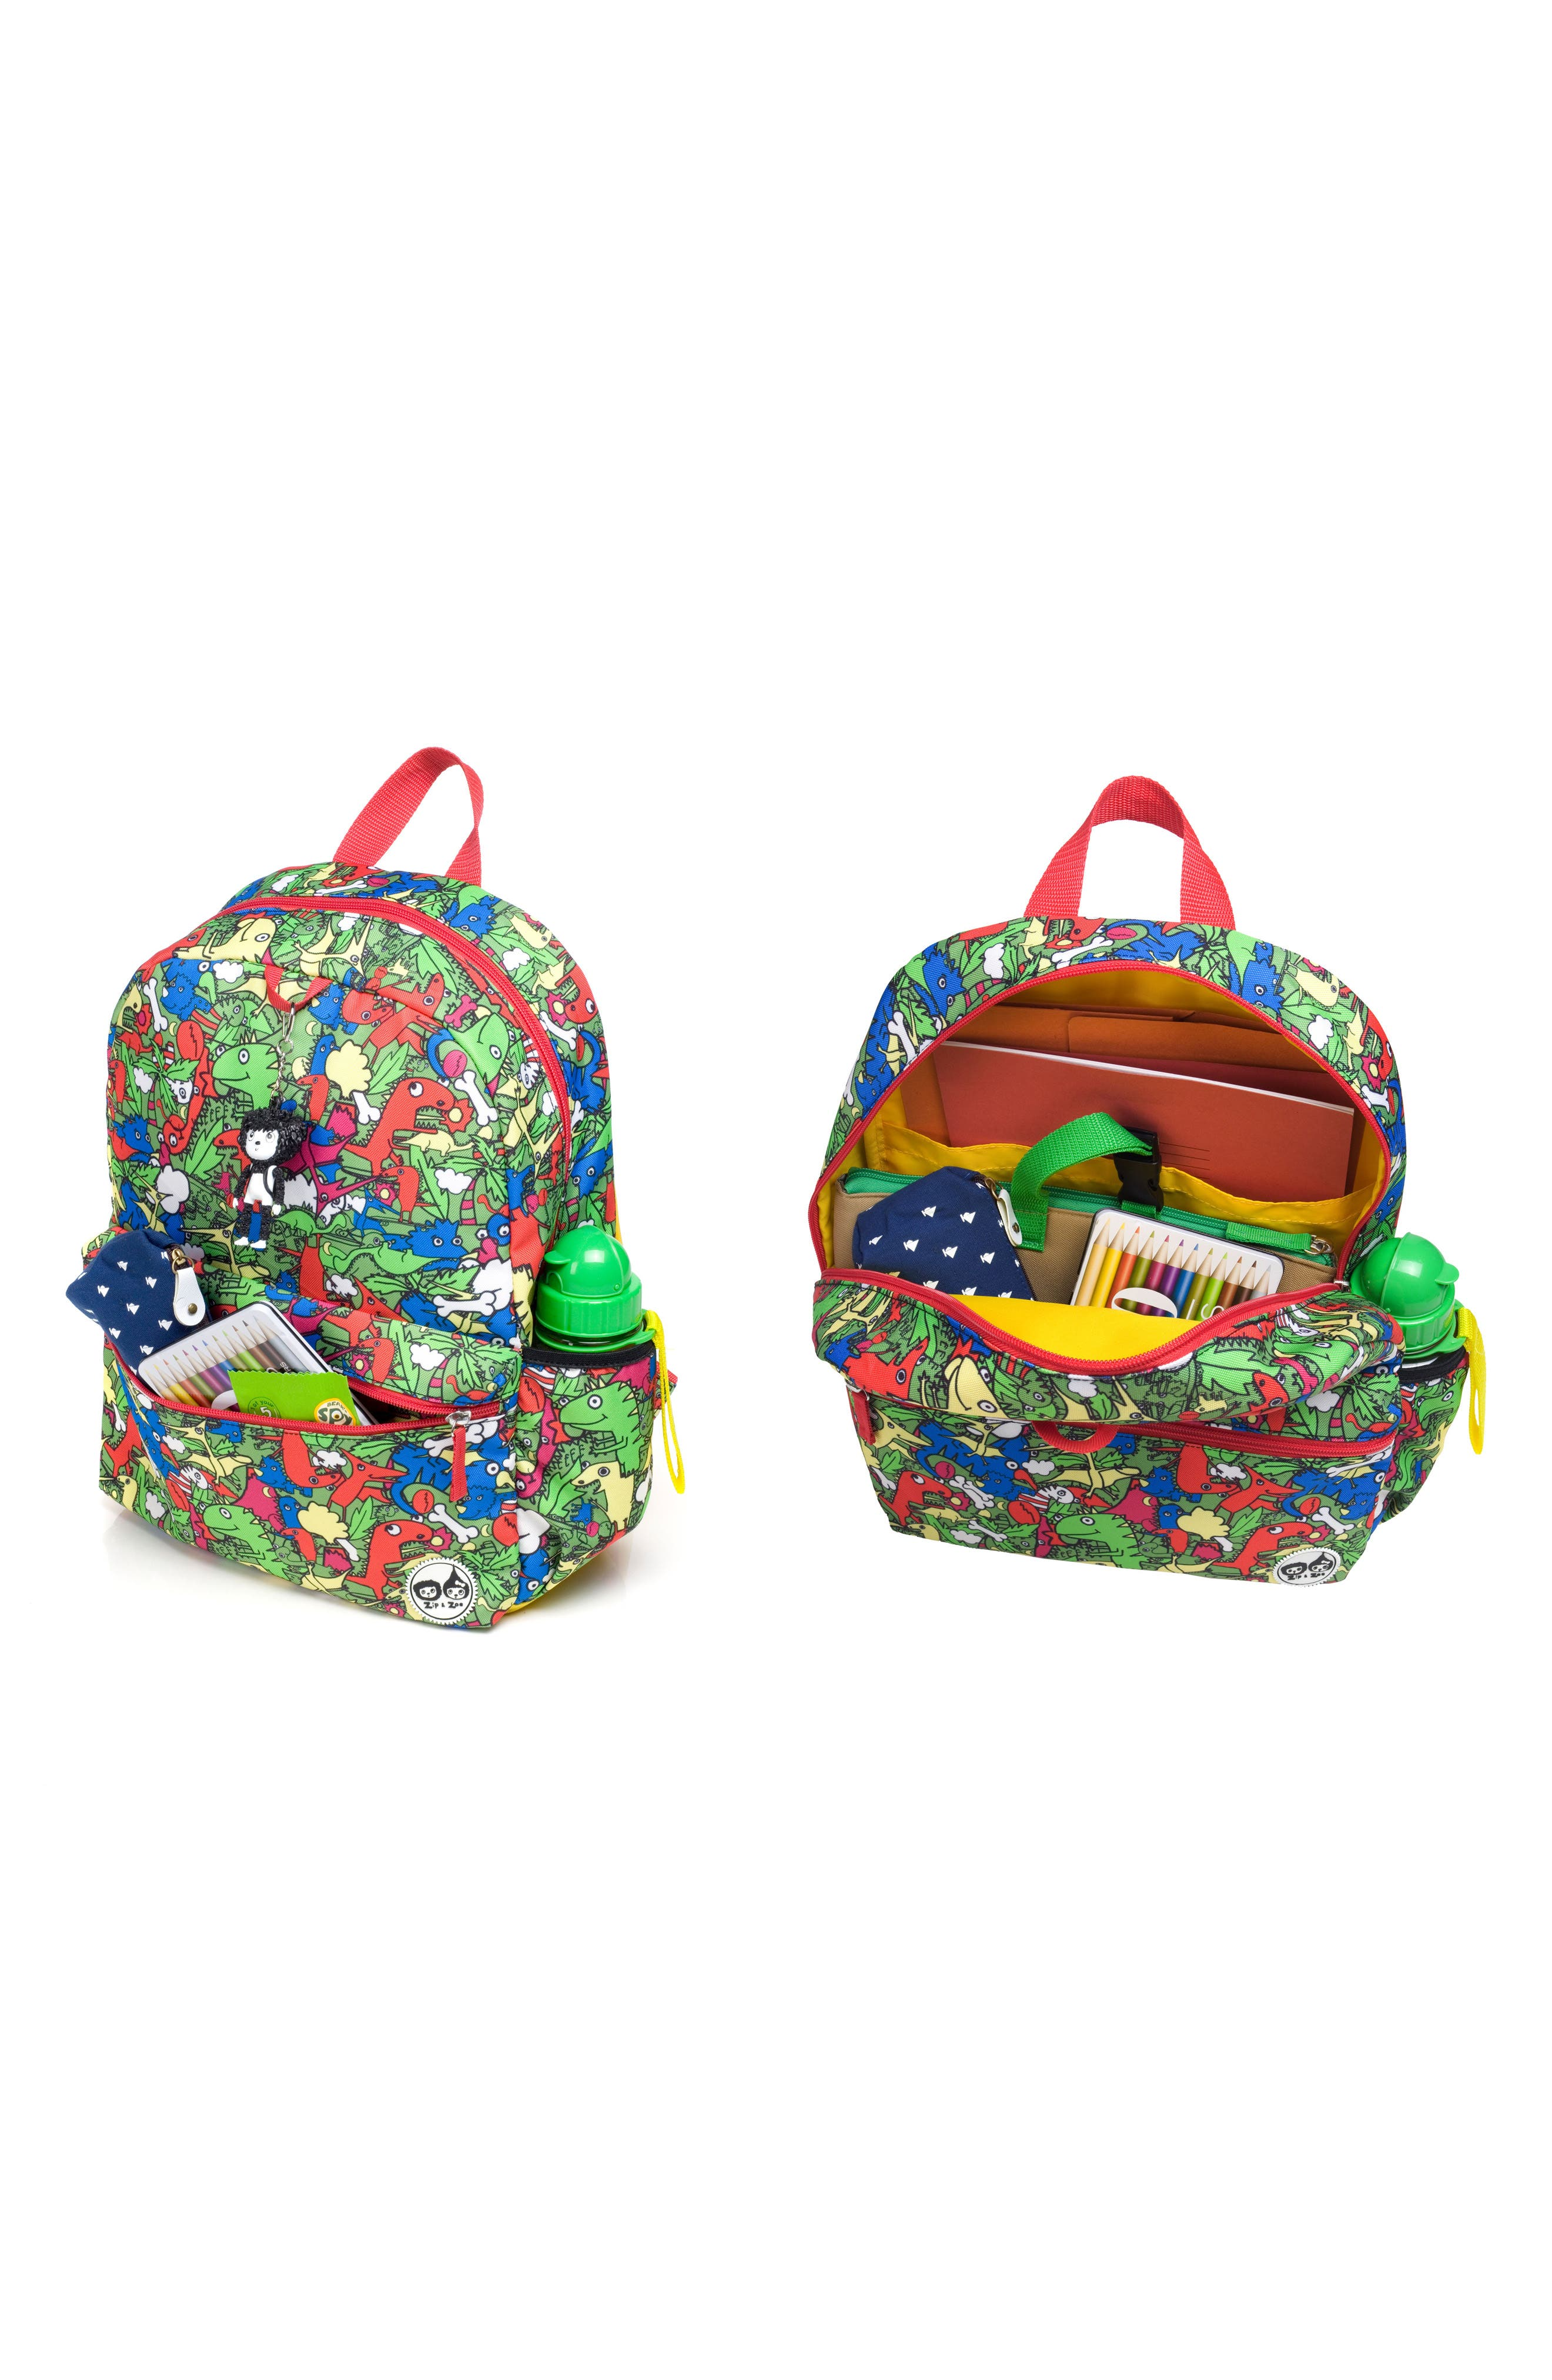 Zip & Zoe Junior Backpack Set,                             Alternate thumbnail 2, color,                             Dino Multi/ Dylan